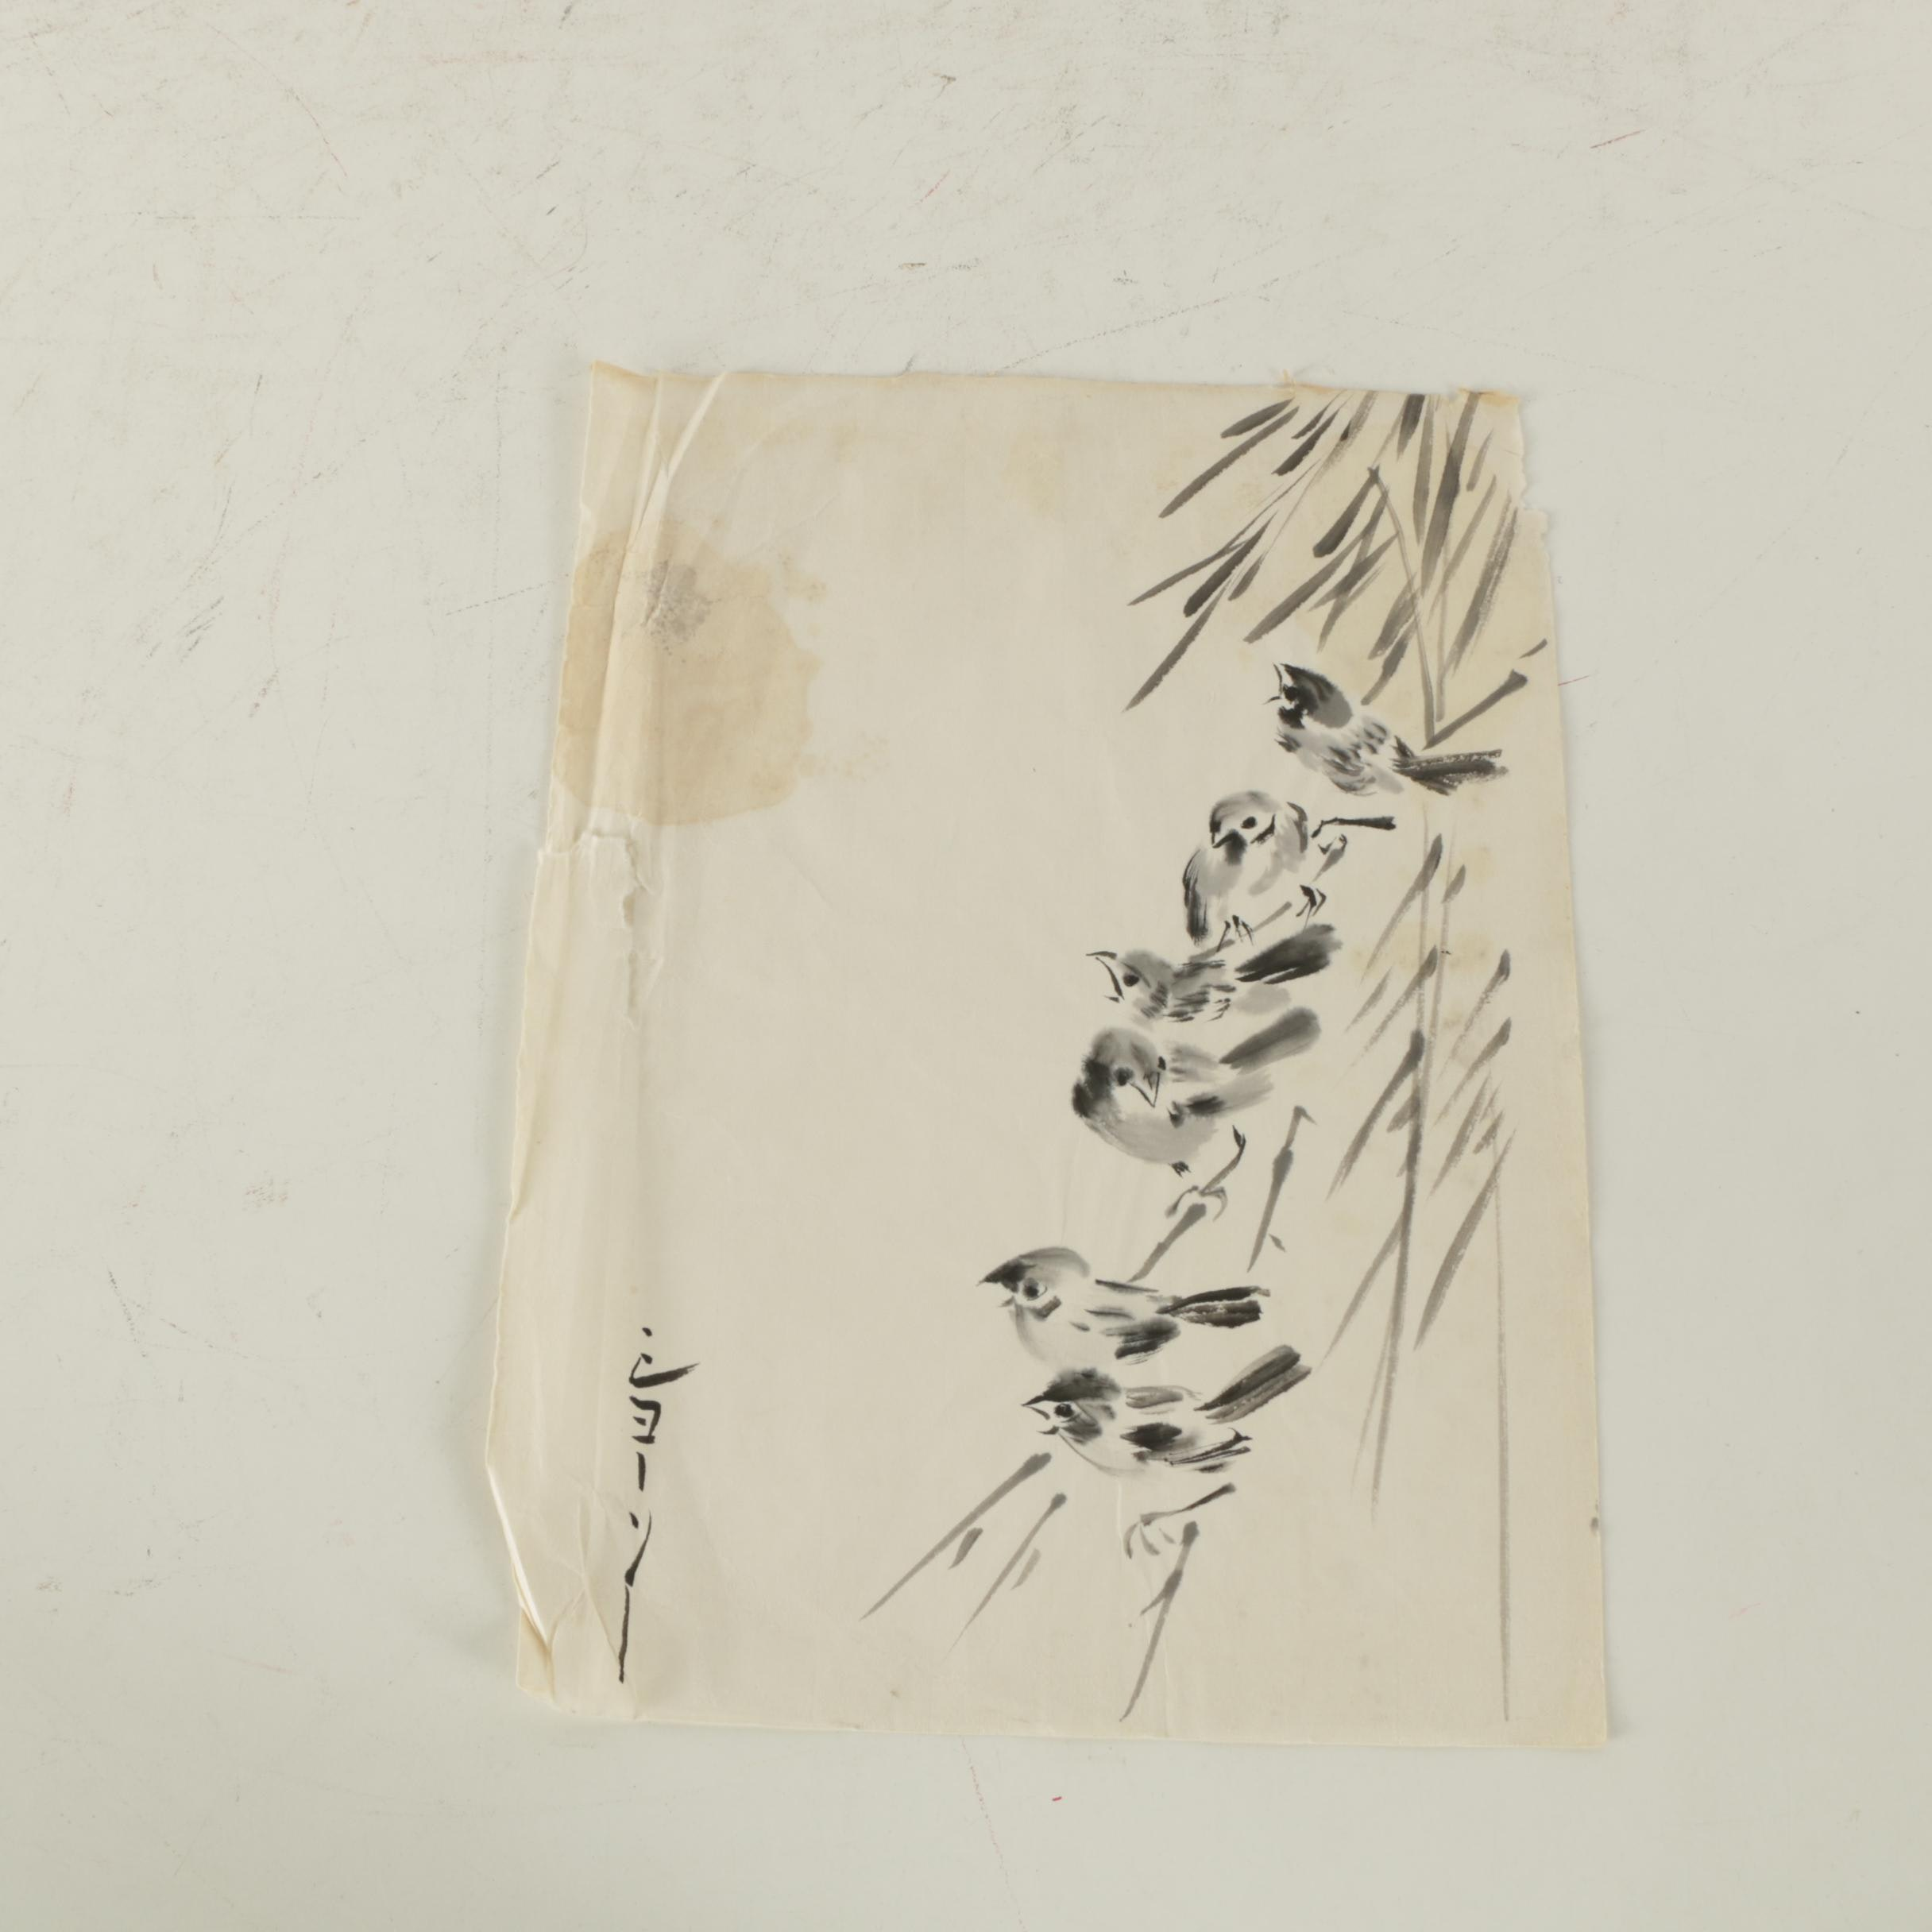 East Asian Style Ink Painting on Rice Paper of Birds